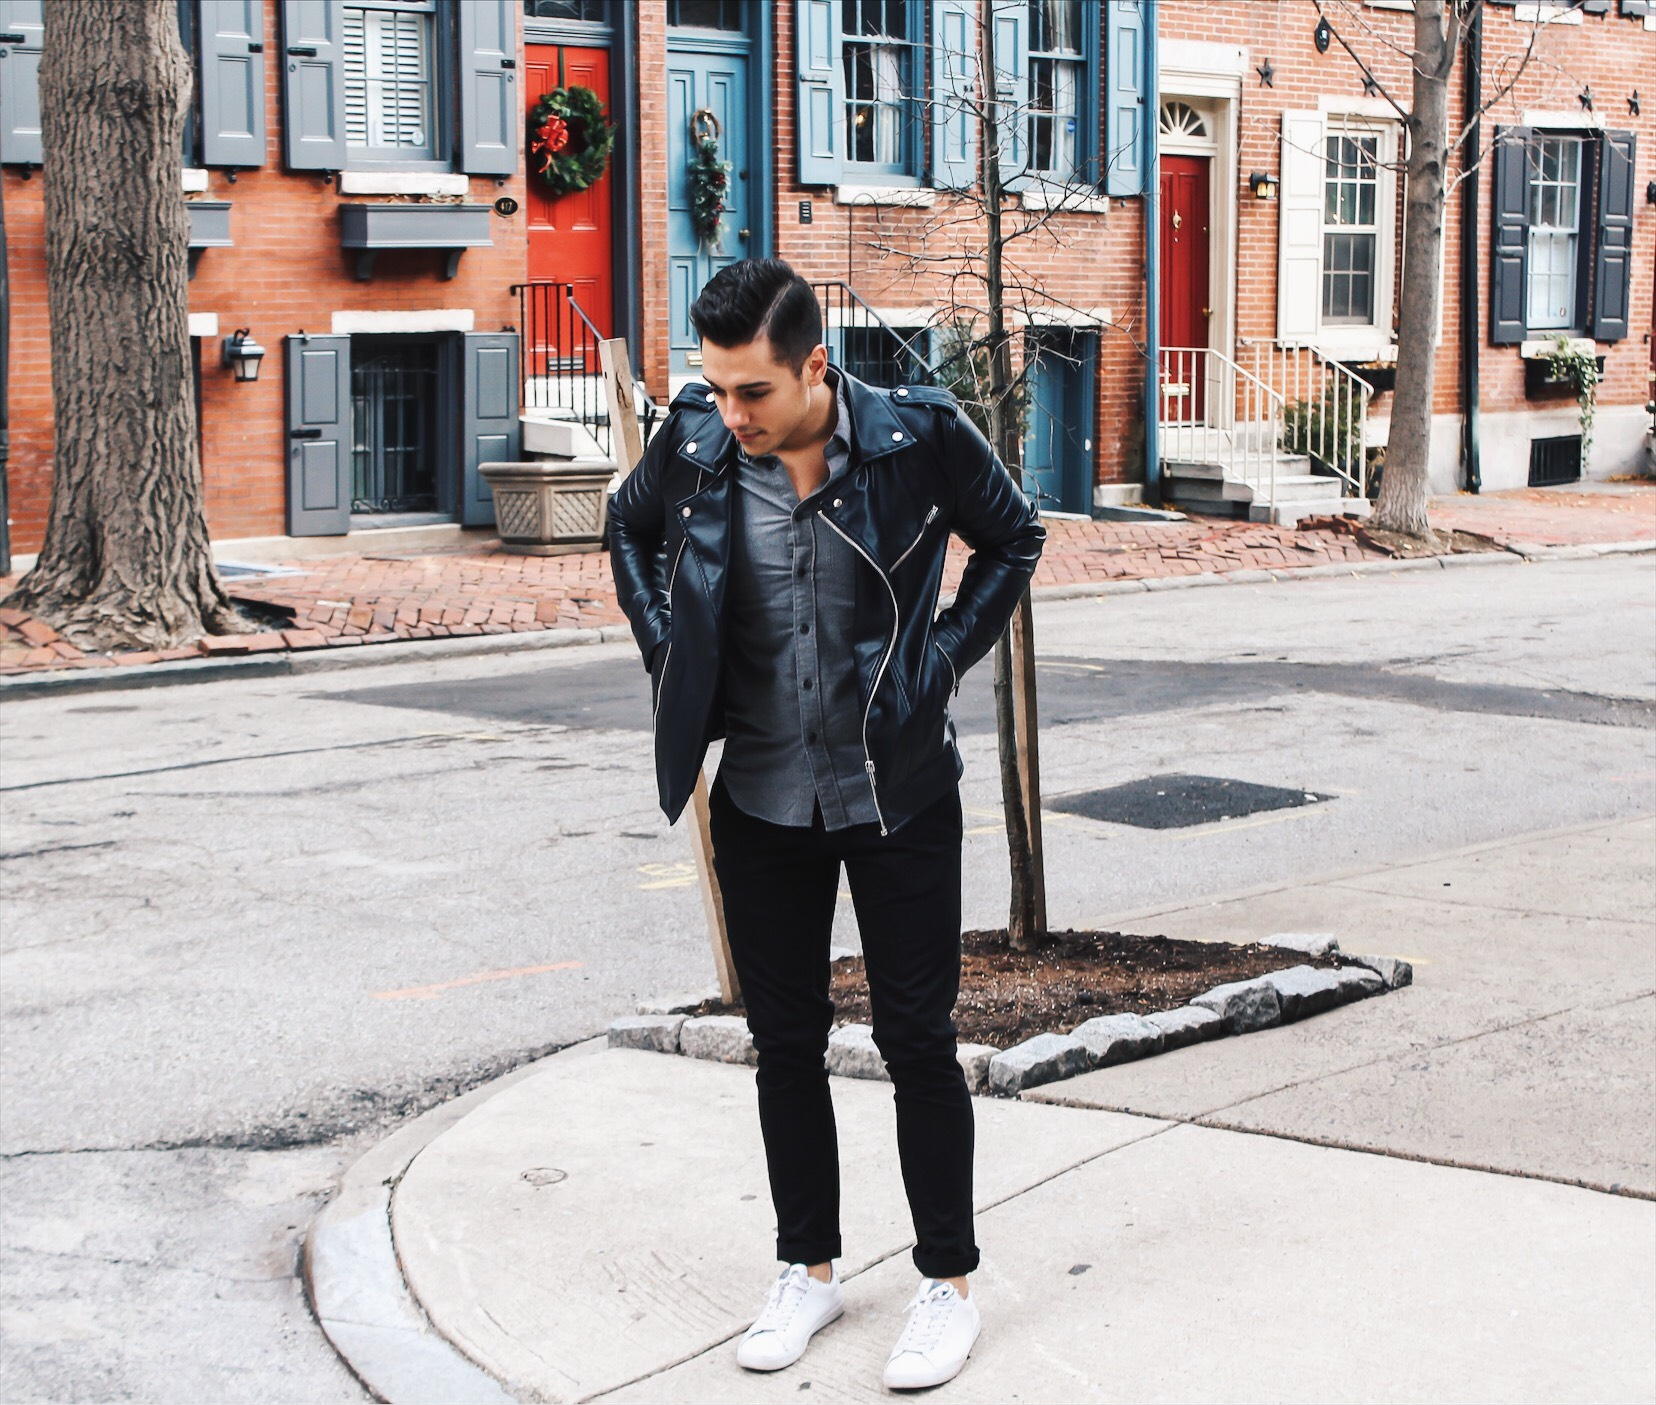 mike on street with leather jacket